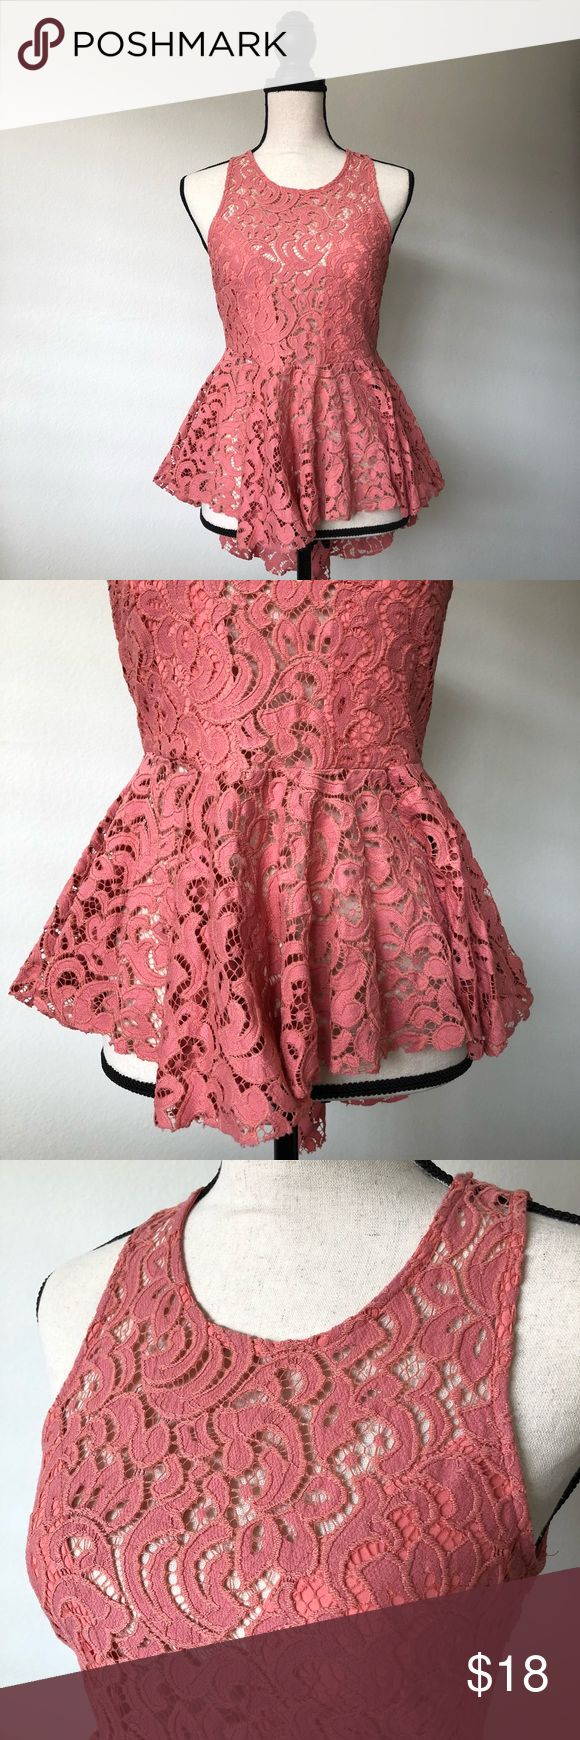 Pink Sleeveless Peplum Top from Papaya Pink Sleeveless Peplum Top  From Papaya Clothing  Lace design  Shell 1: 60% Cotton 40% Nylon Shell 2: 100% Polyester   Size Large  Slight snagging/fraying due to the type of fabric (please see last picture) Papaya Tops Blouses